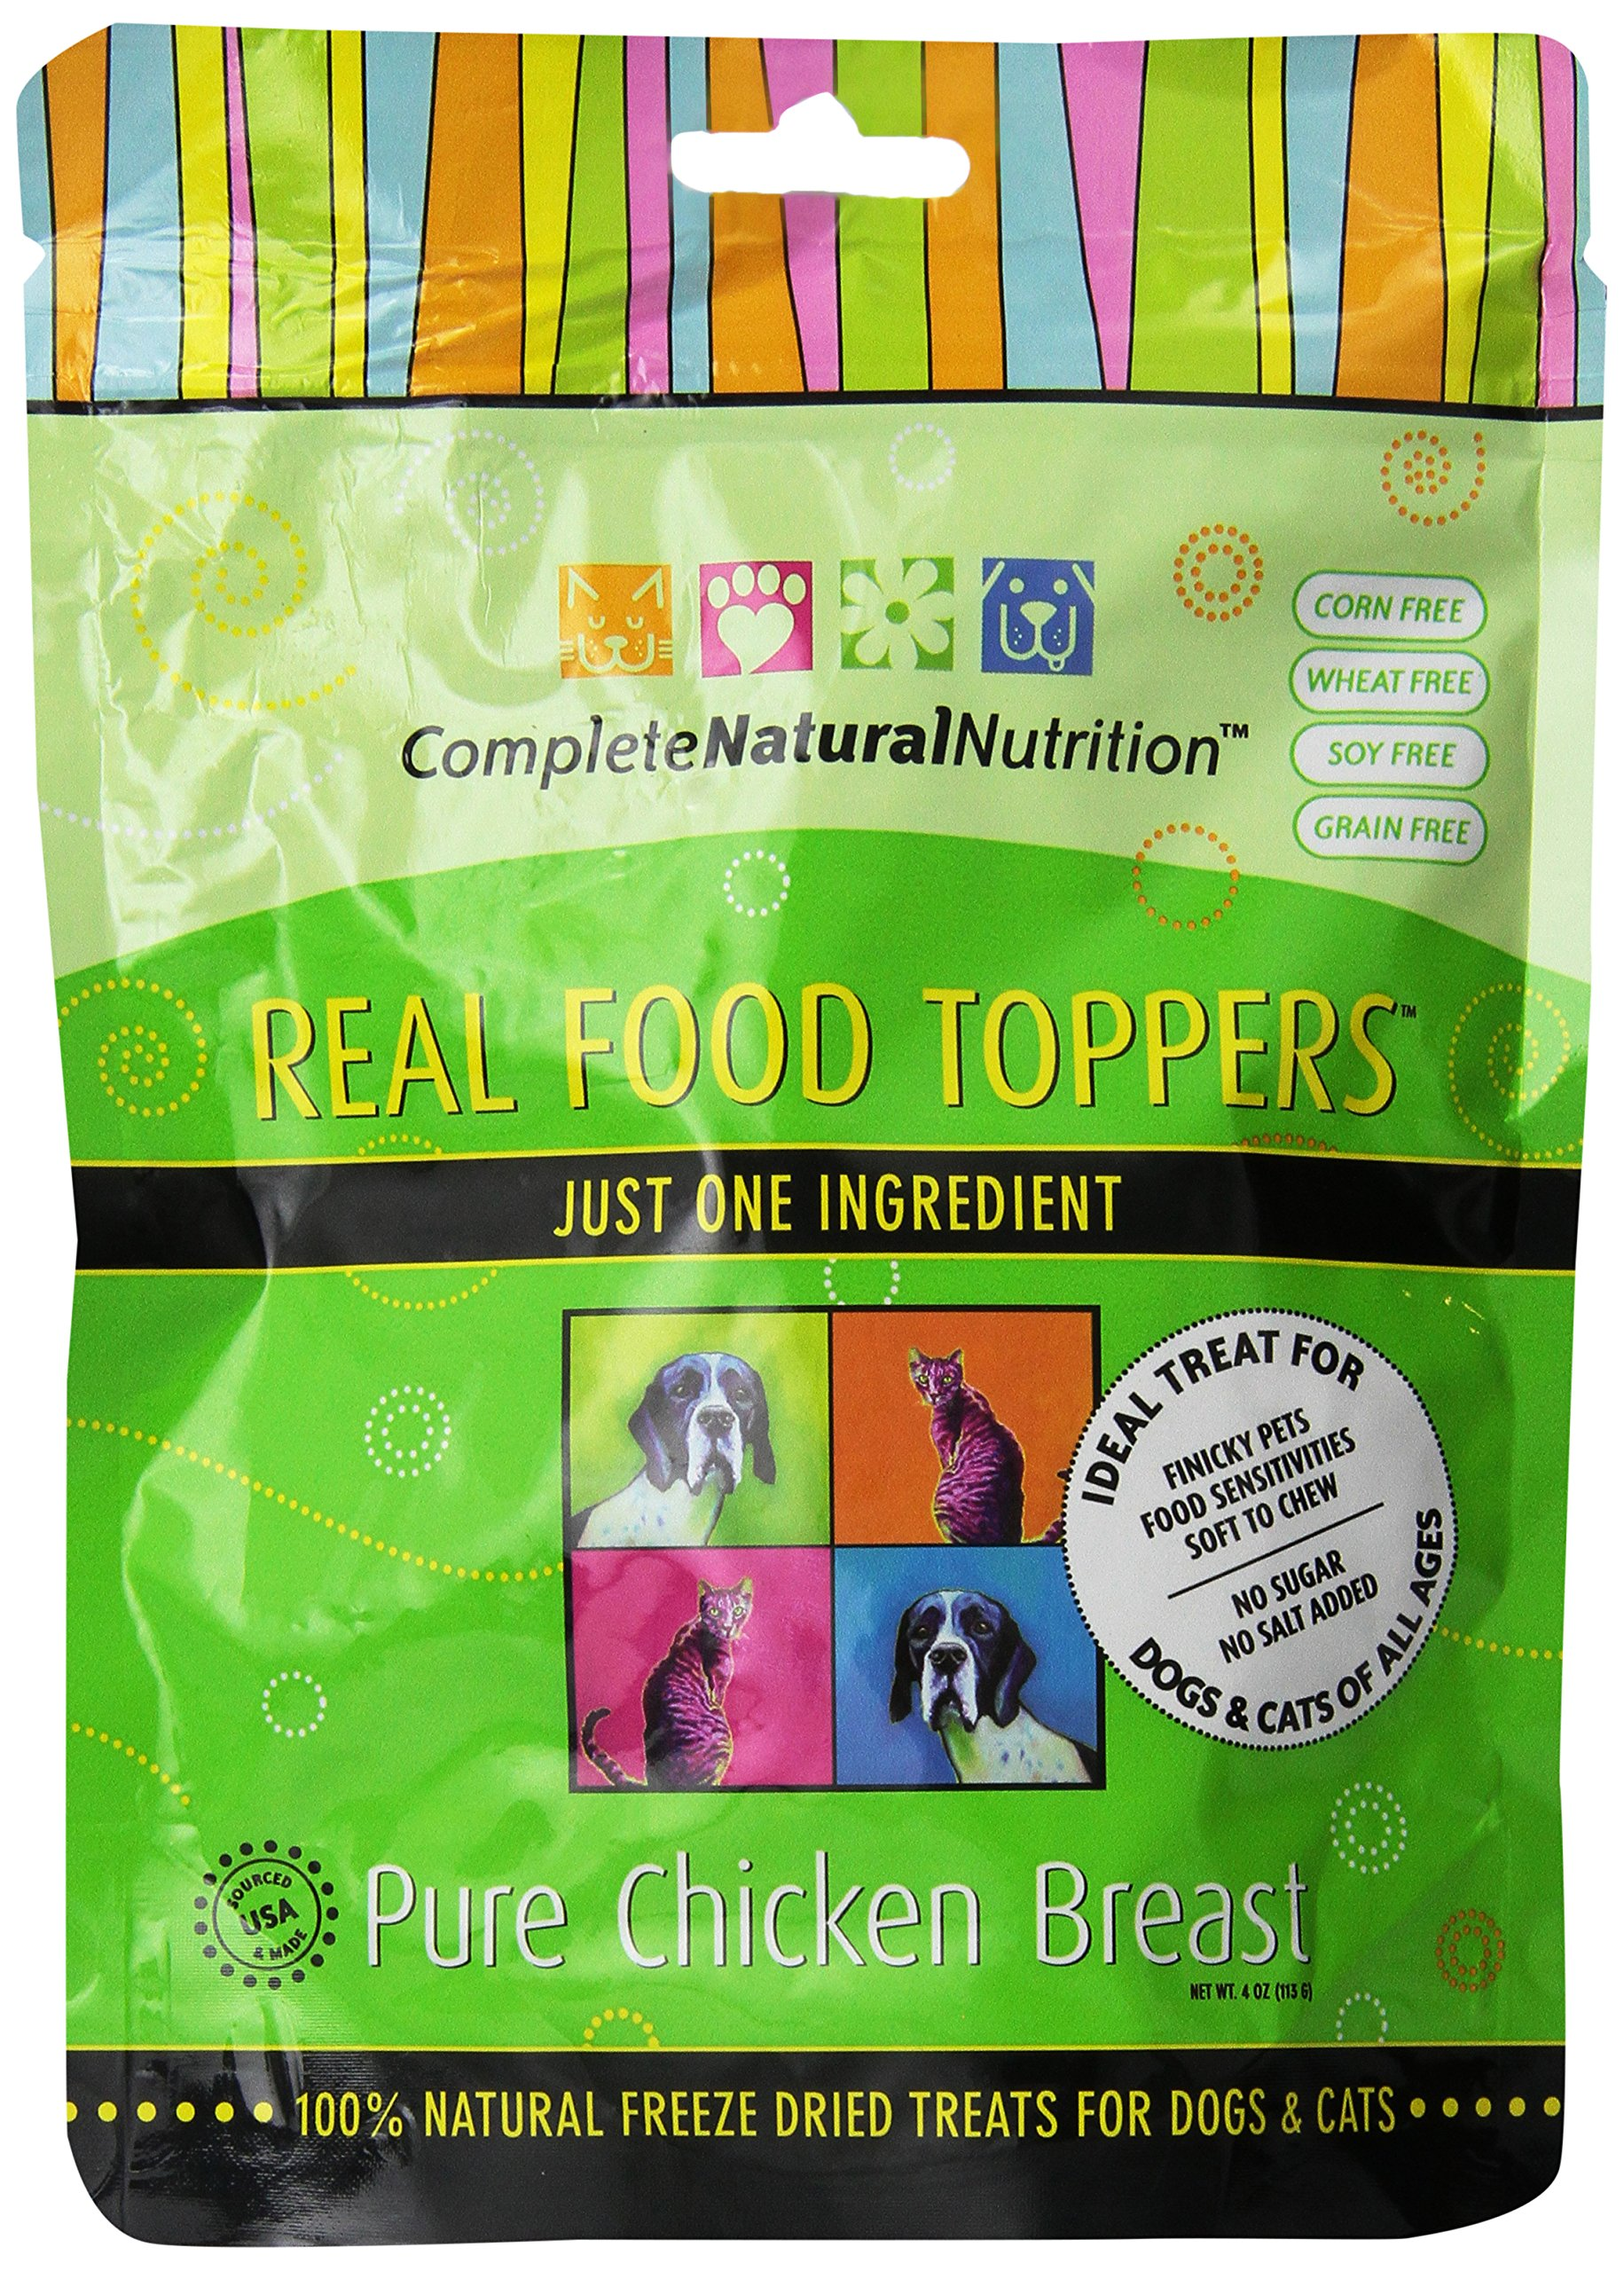 Complete Natural Nutrition Real Food Toppers - Pure Chicken Breast - 4-Ounce by Complete Natural Nutrition (Image #1)